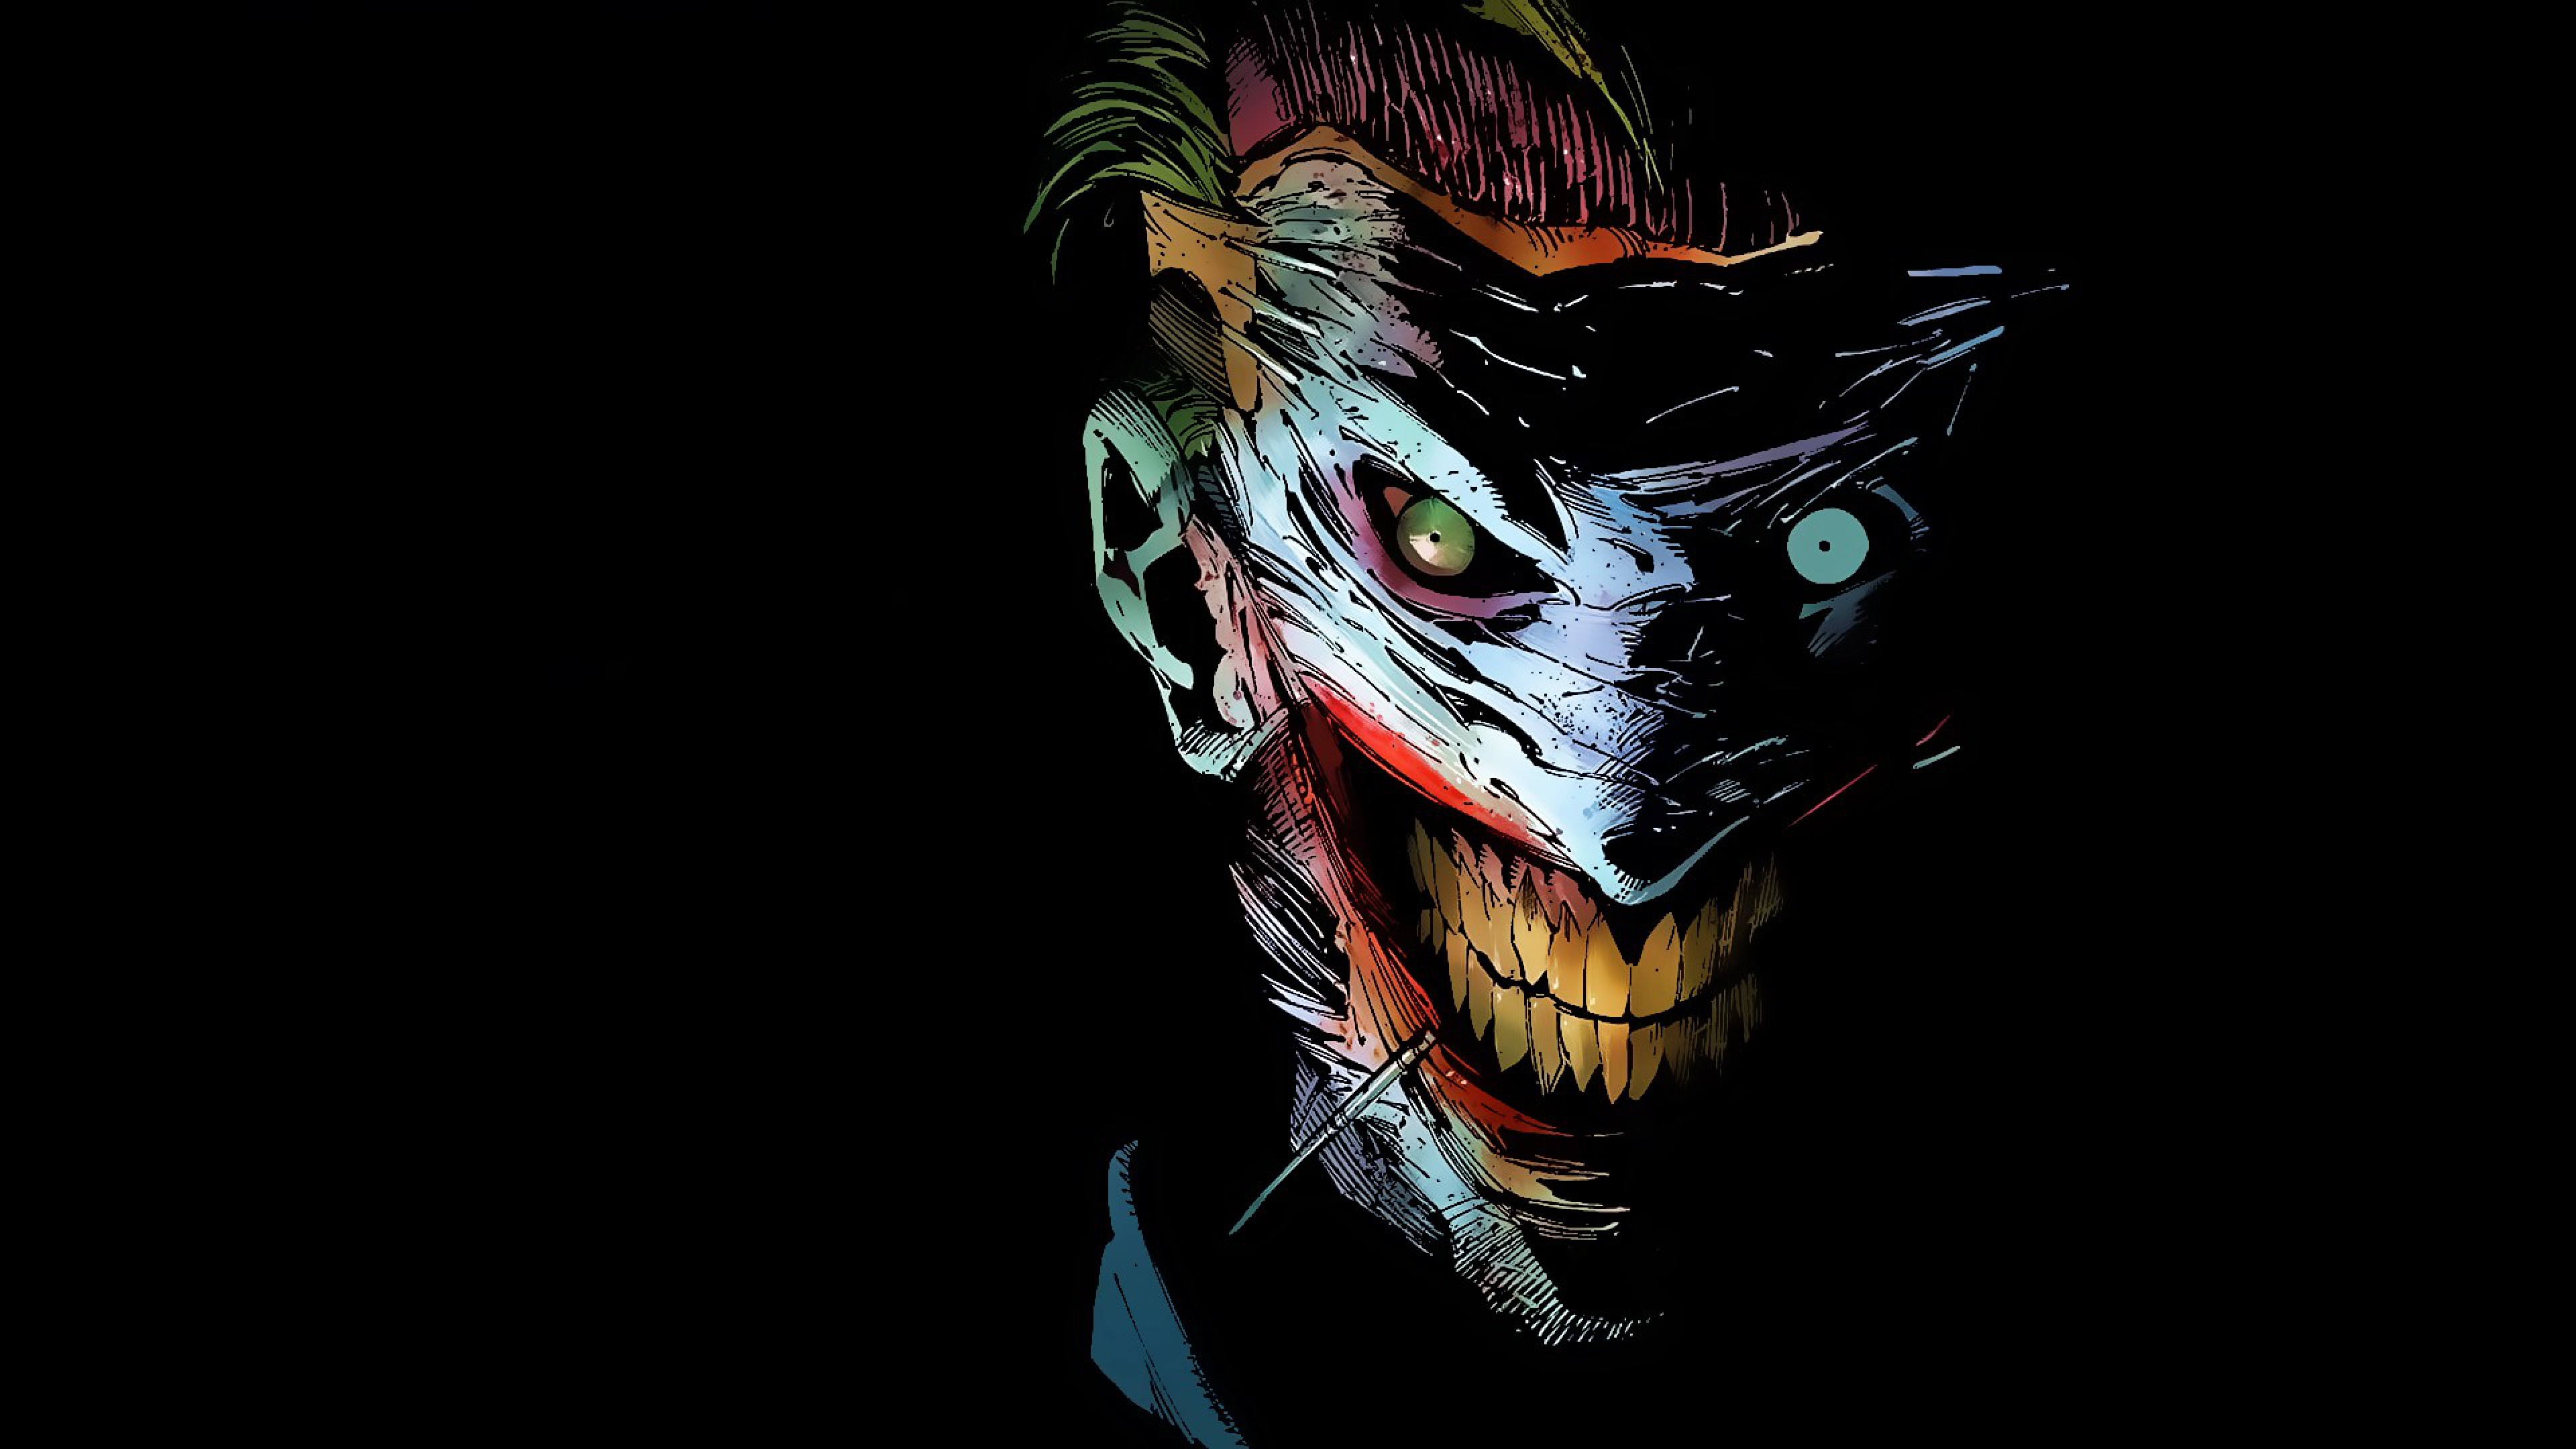 877 Joker Hd Wallpapers Background Images Wallpaper Abyss